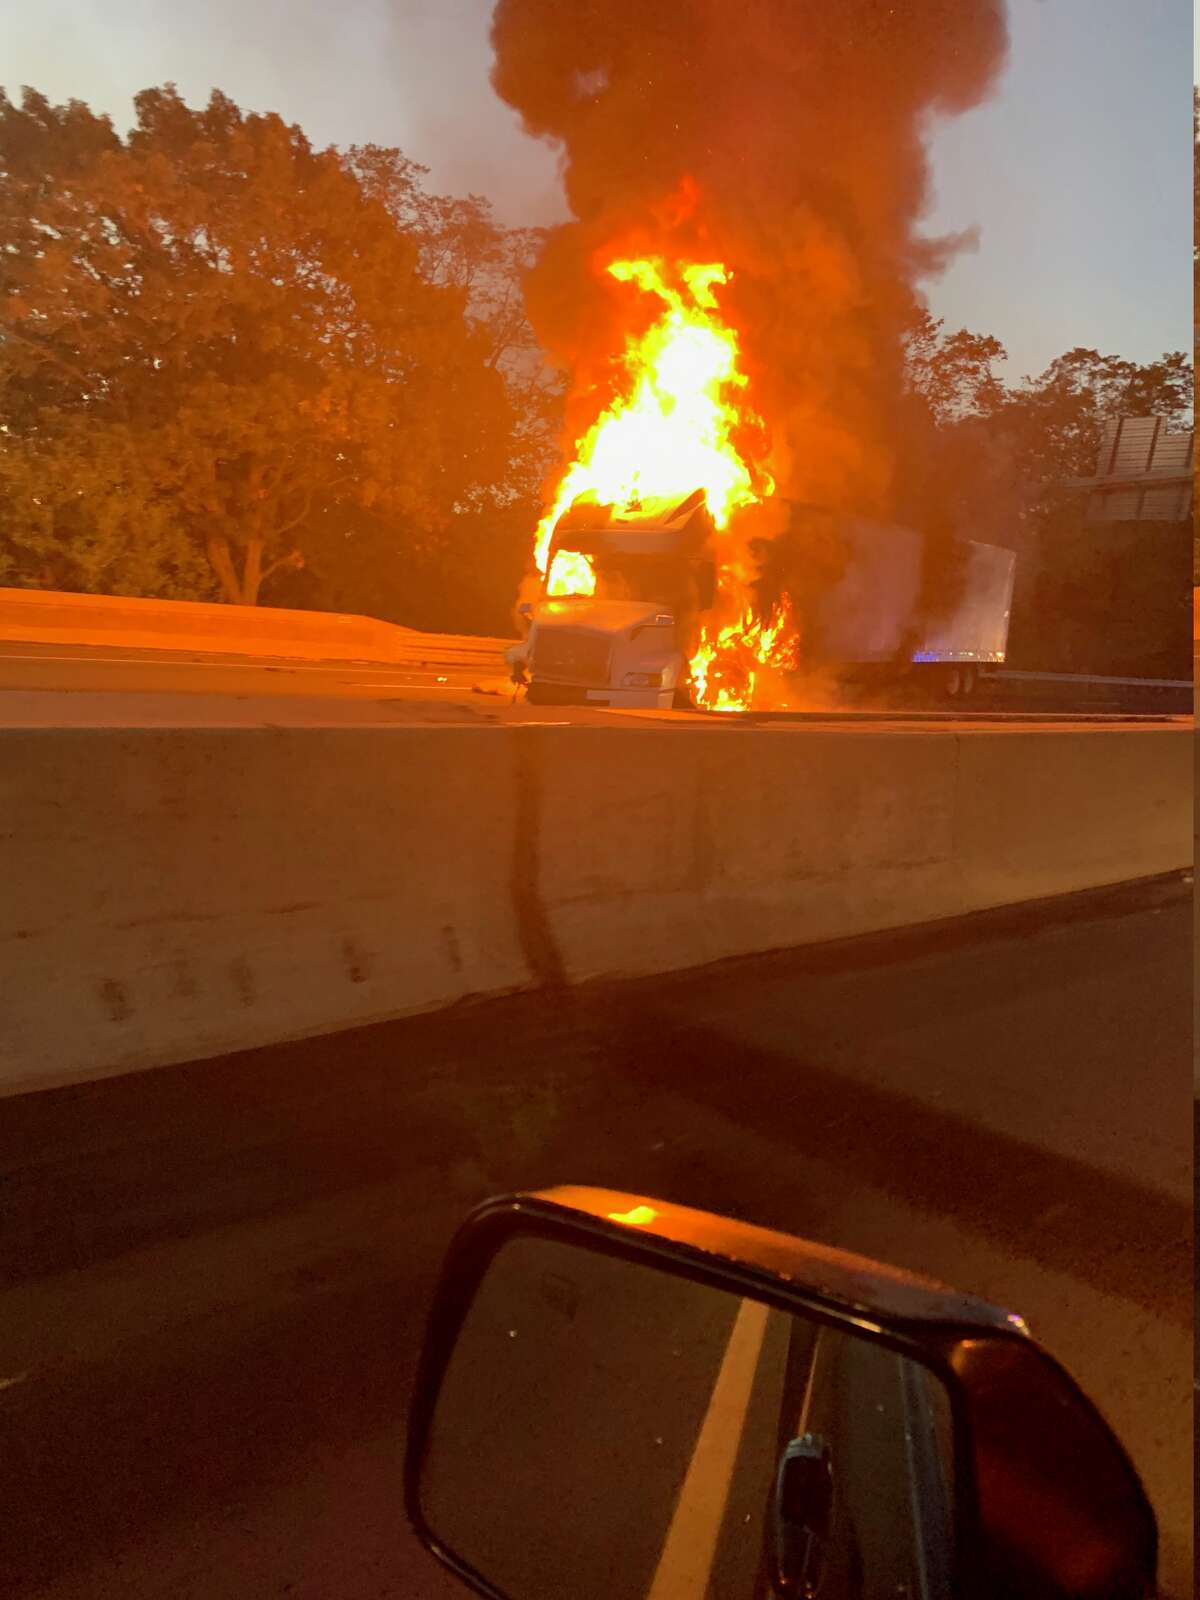 A truck fire on Interstate 95 on Wednesday, Oct. 14, 2020.